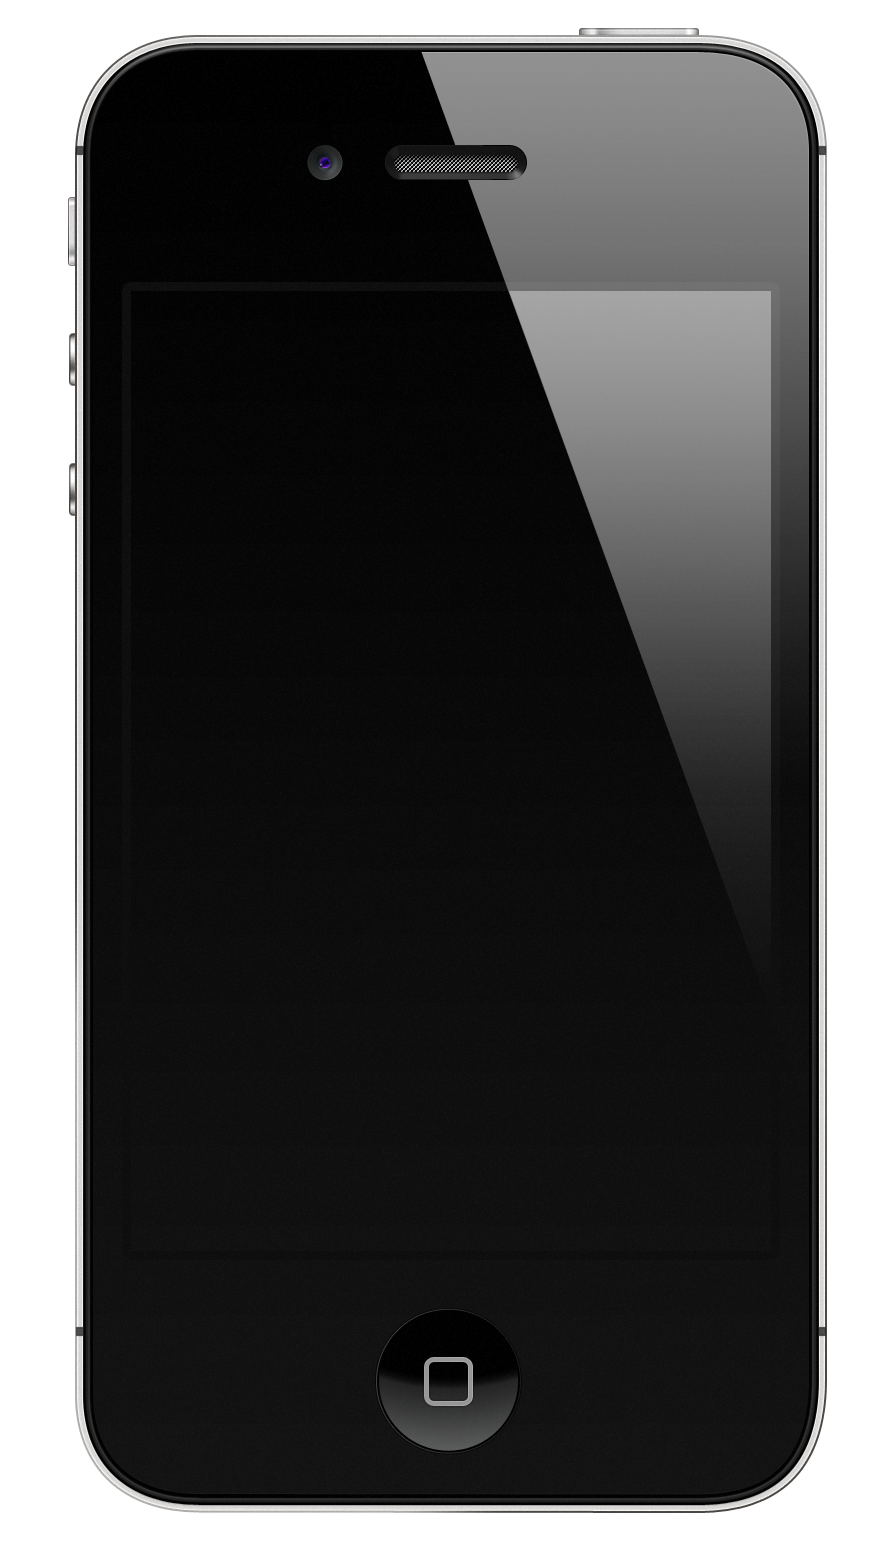 A black iPhone 4S.